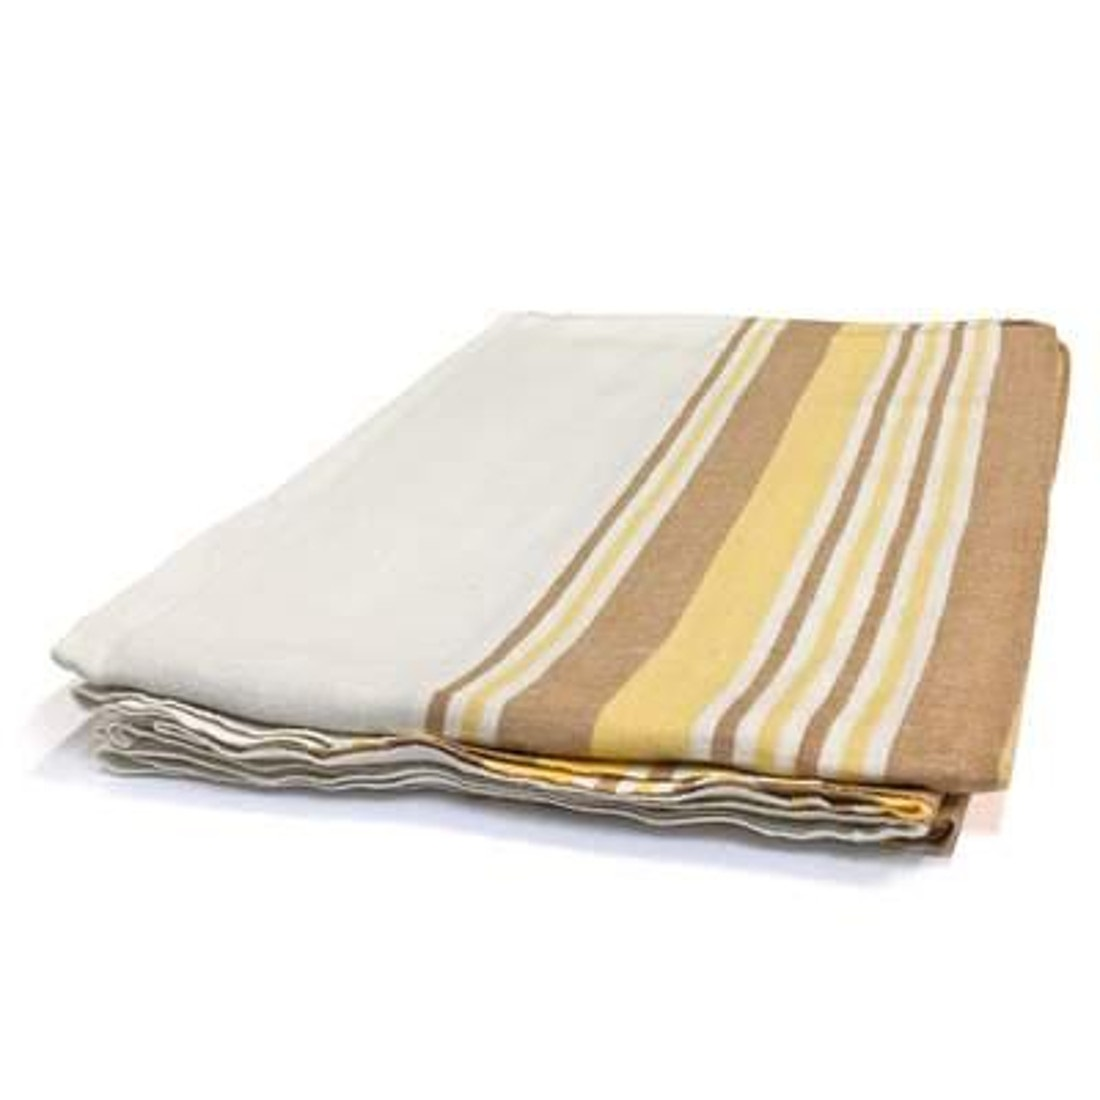 "Flannel Blanket 72"" x 90"" Gold Stripes"